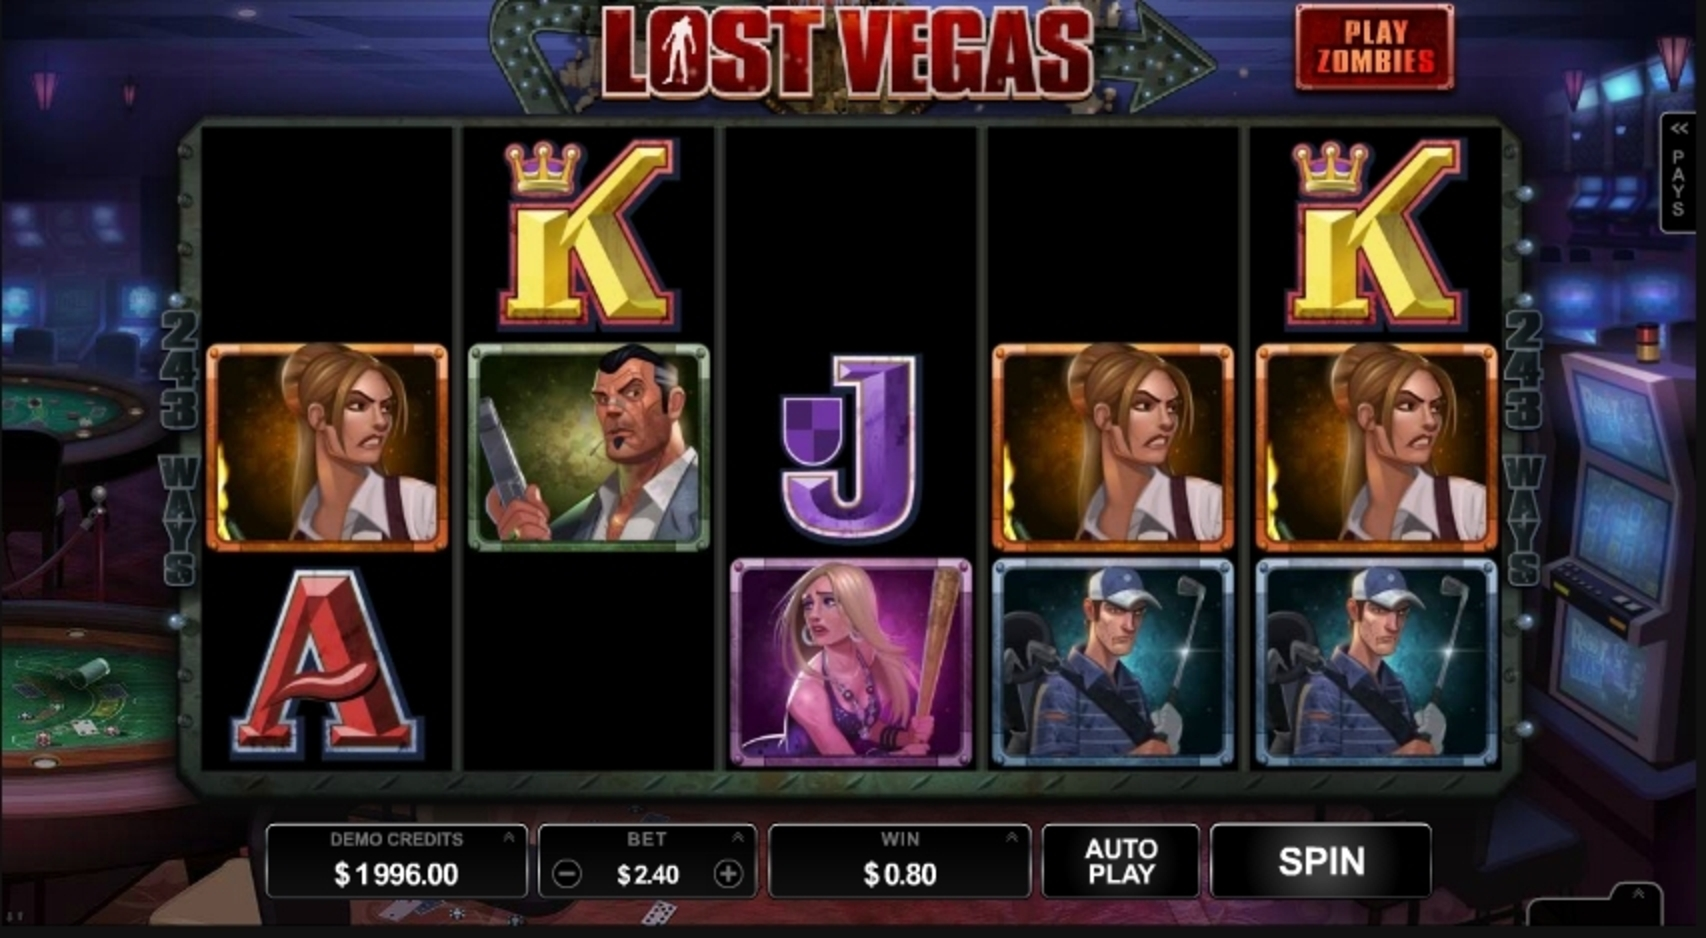 Win Money in Lost Vegas Free Slot Game by Microgaming